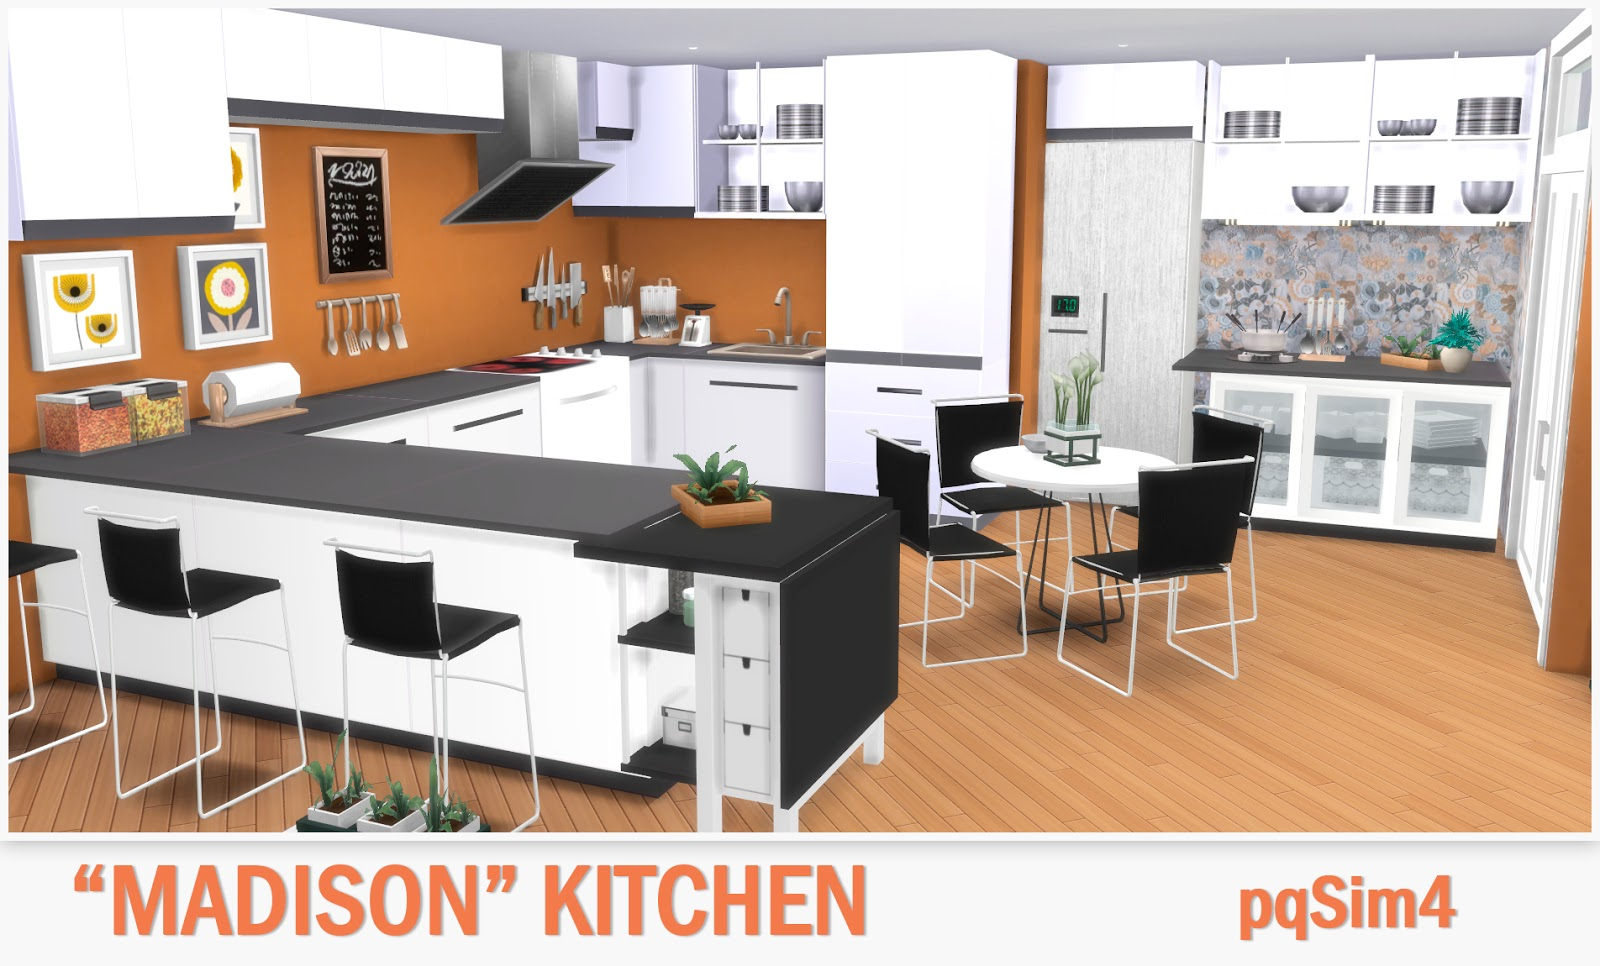 Kitchen madison sims 4 custom content for Kitchen ideas sims 4